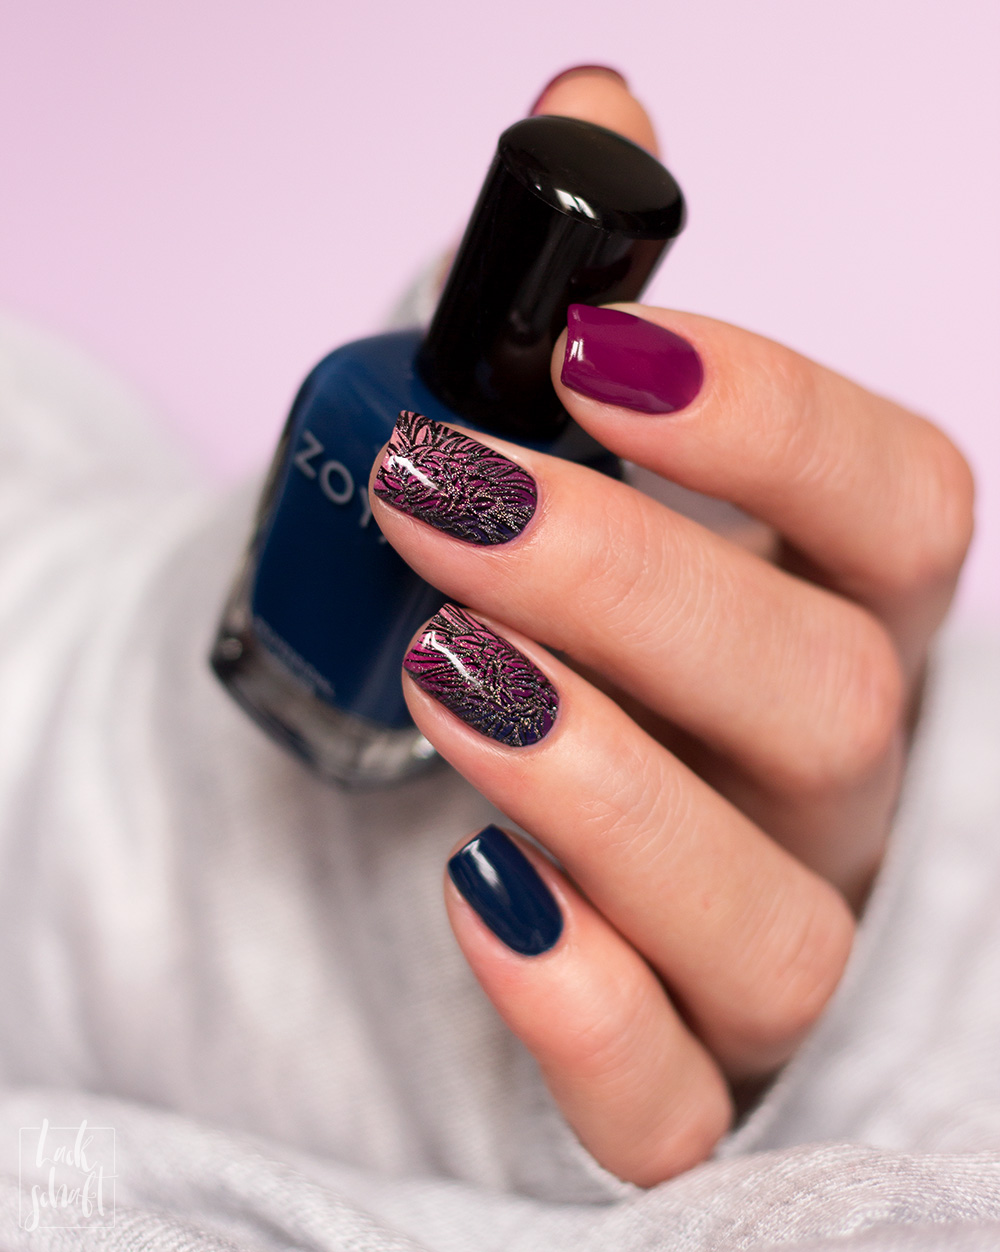 Zoya-Sensual-Collection-gradient-Nailart-Elliot-Ripley-Joss-1